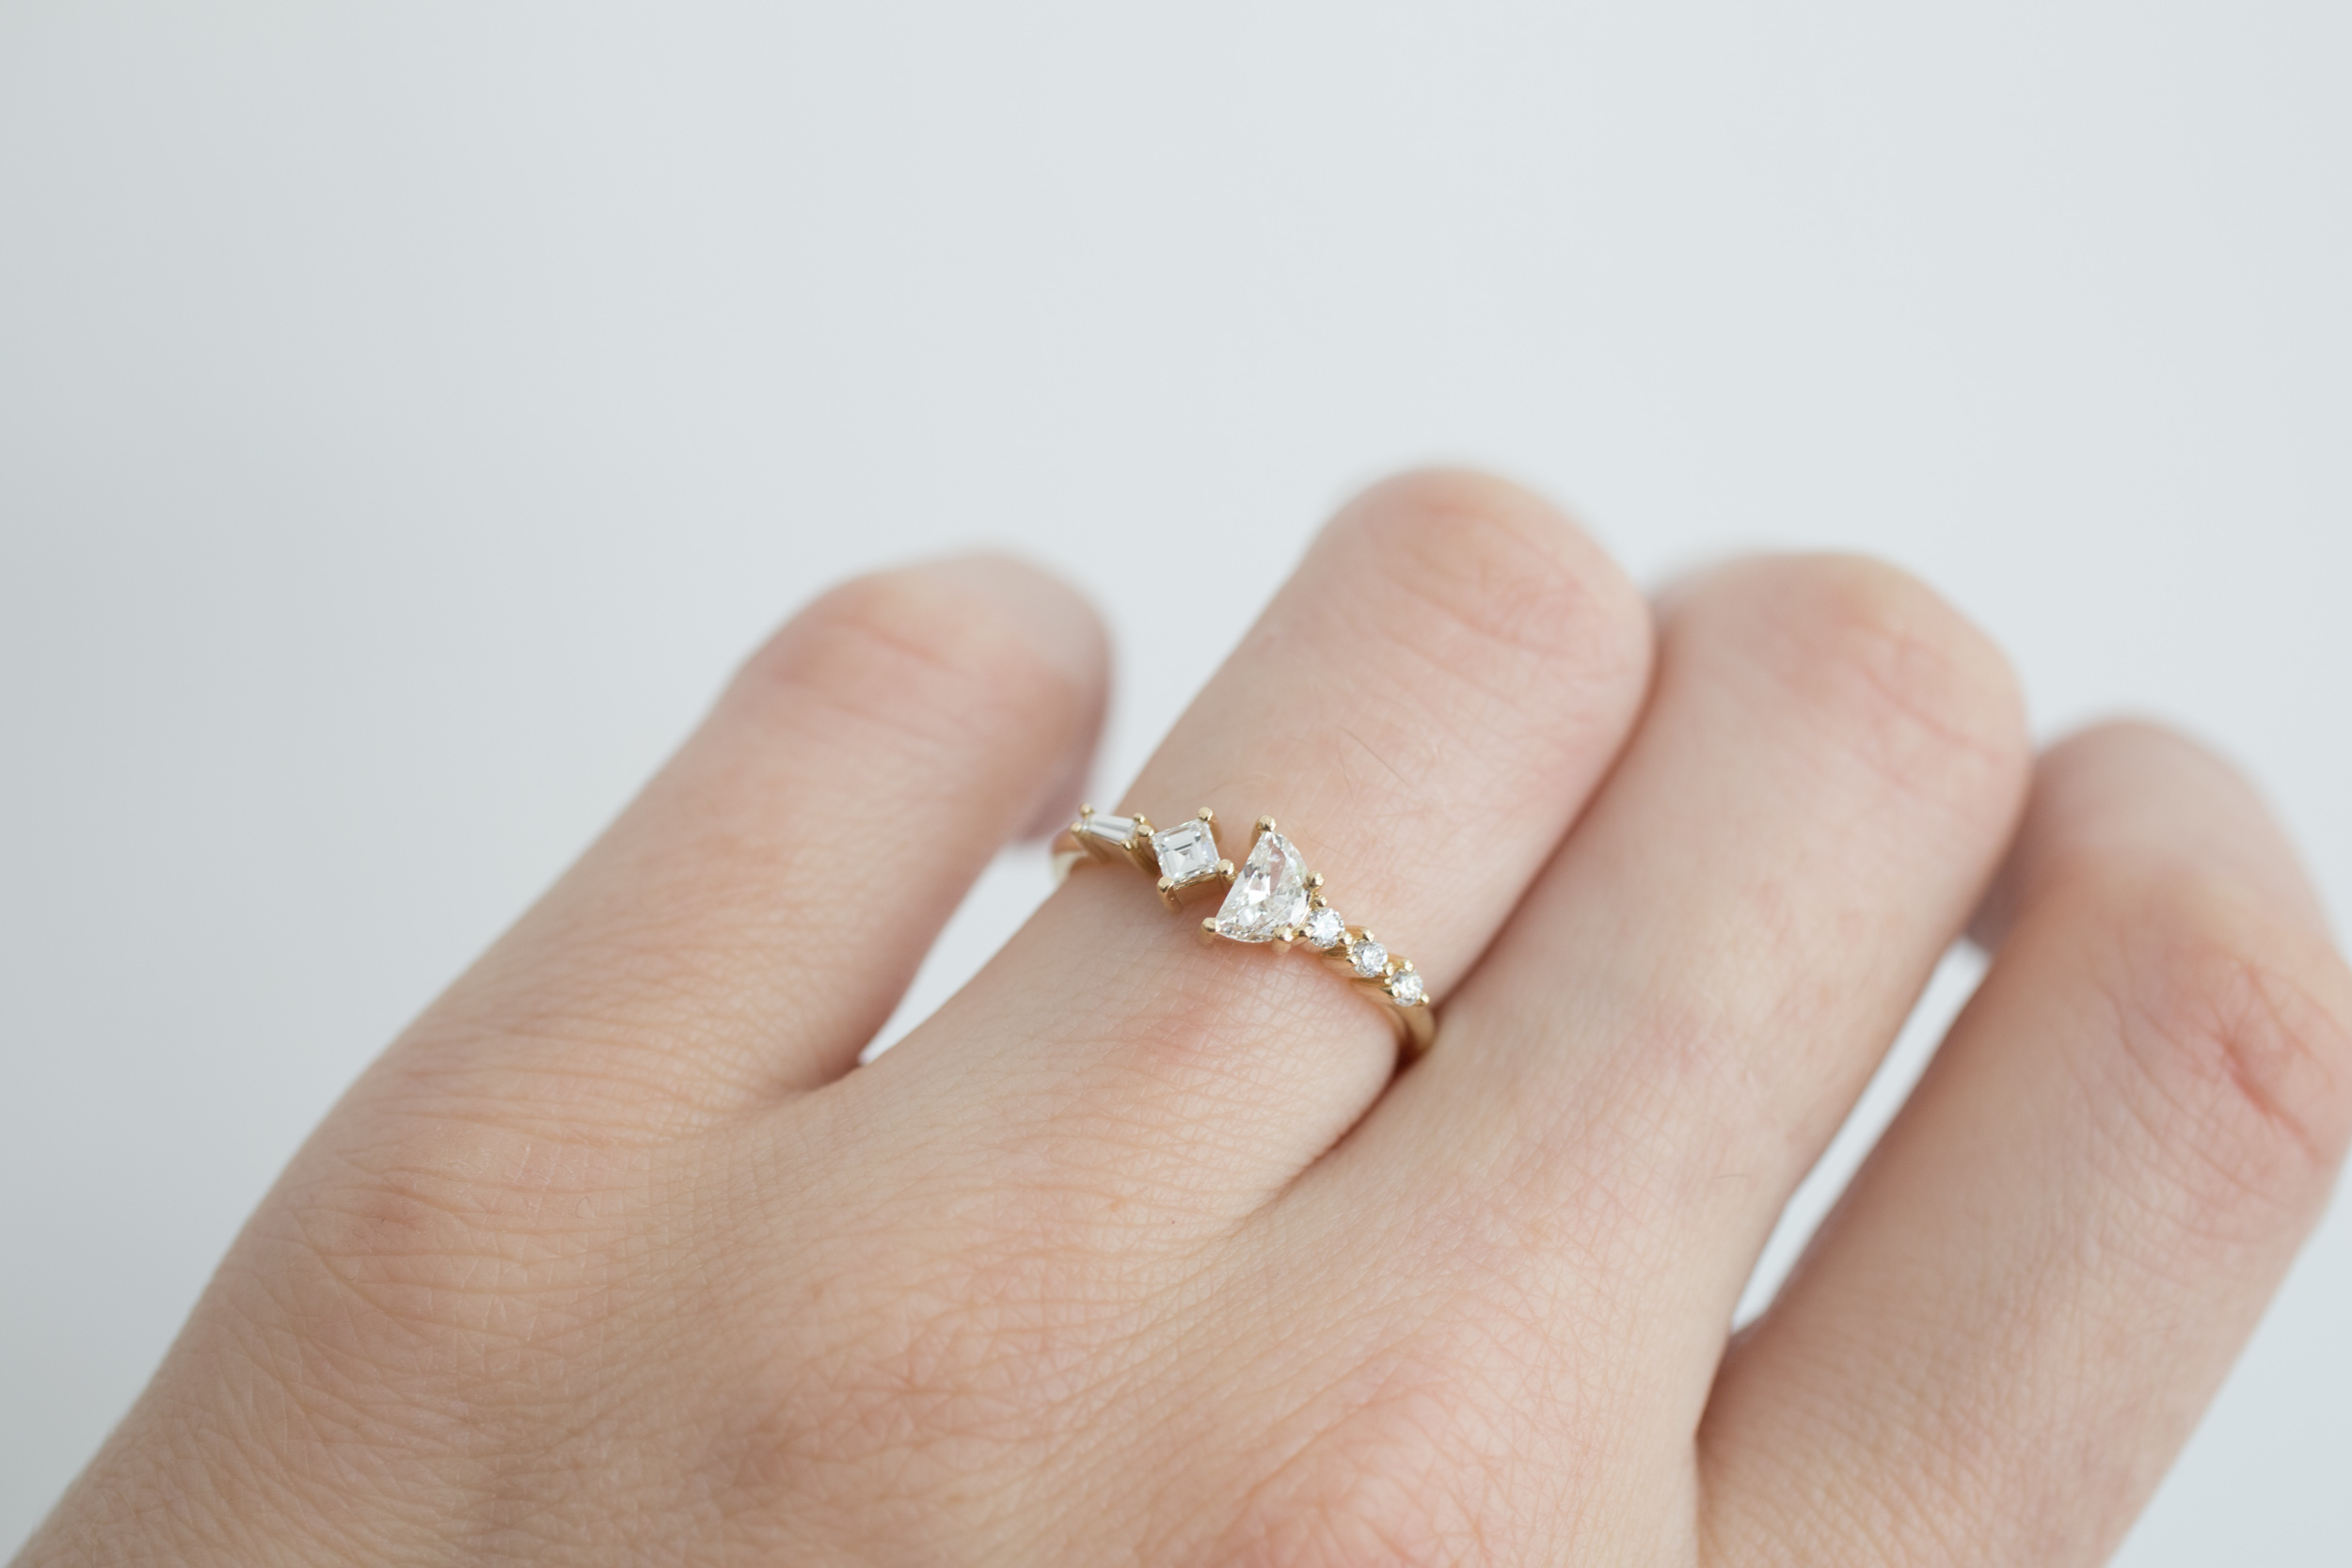 Jacob + Greta Half Moon Diamond Cluster Ring-12.jpg